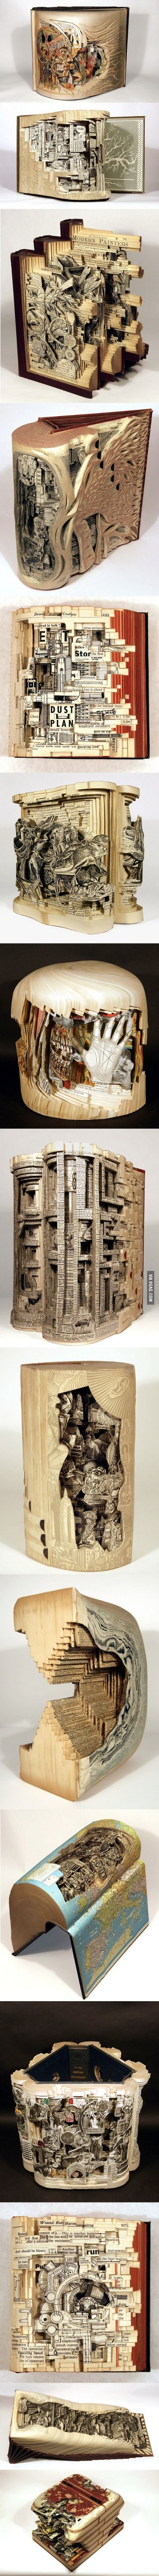 9GAG - Awesome books are awesome